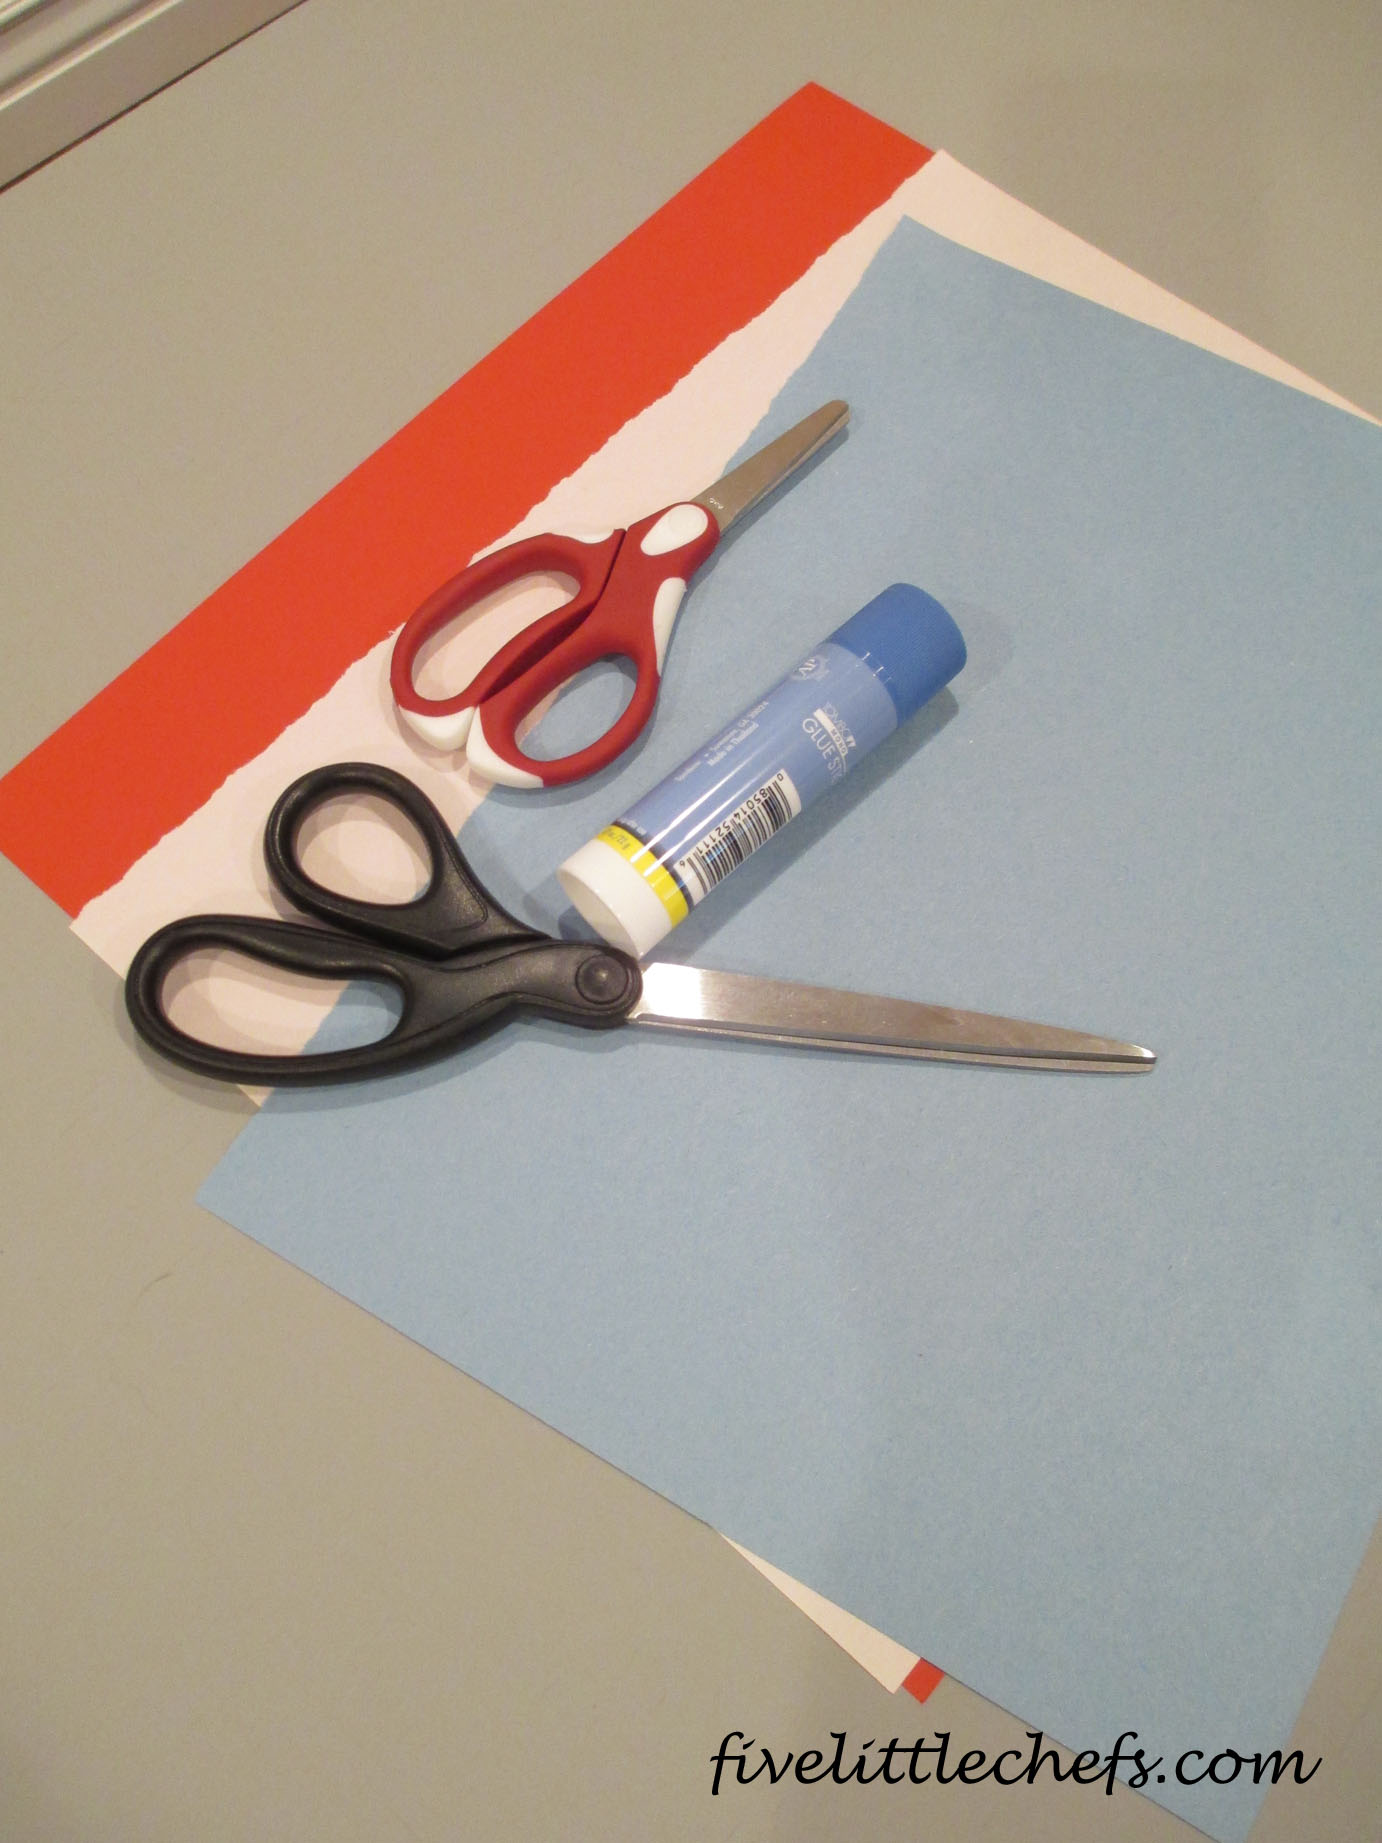 What is a blue paper?